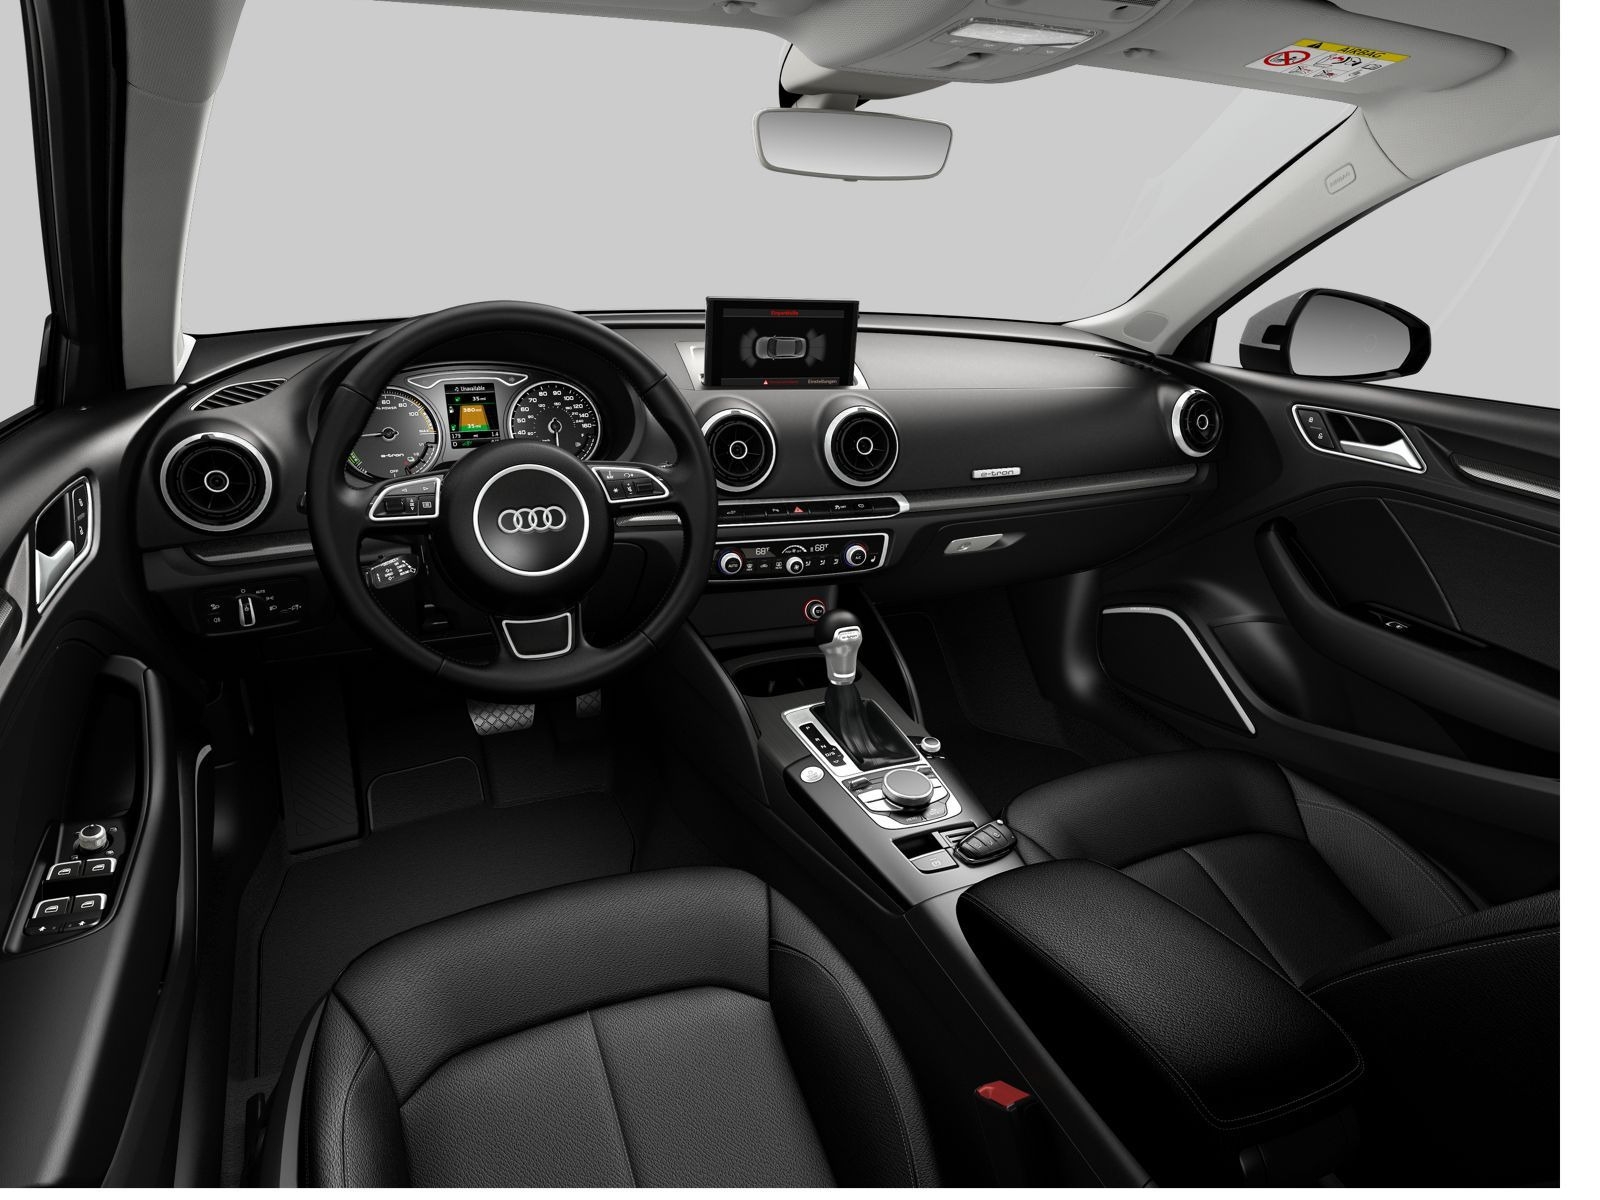 2016 Audi A3 Sportback Prestige (larger screen and mmi touch) | VW